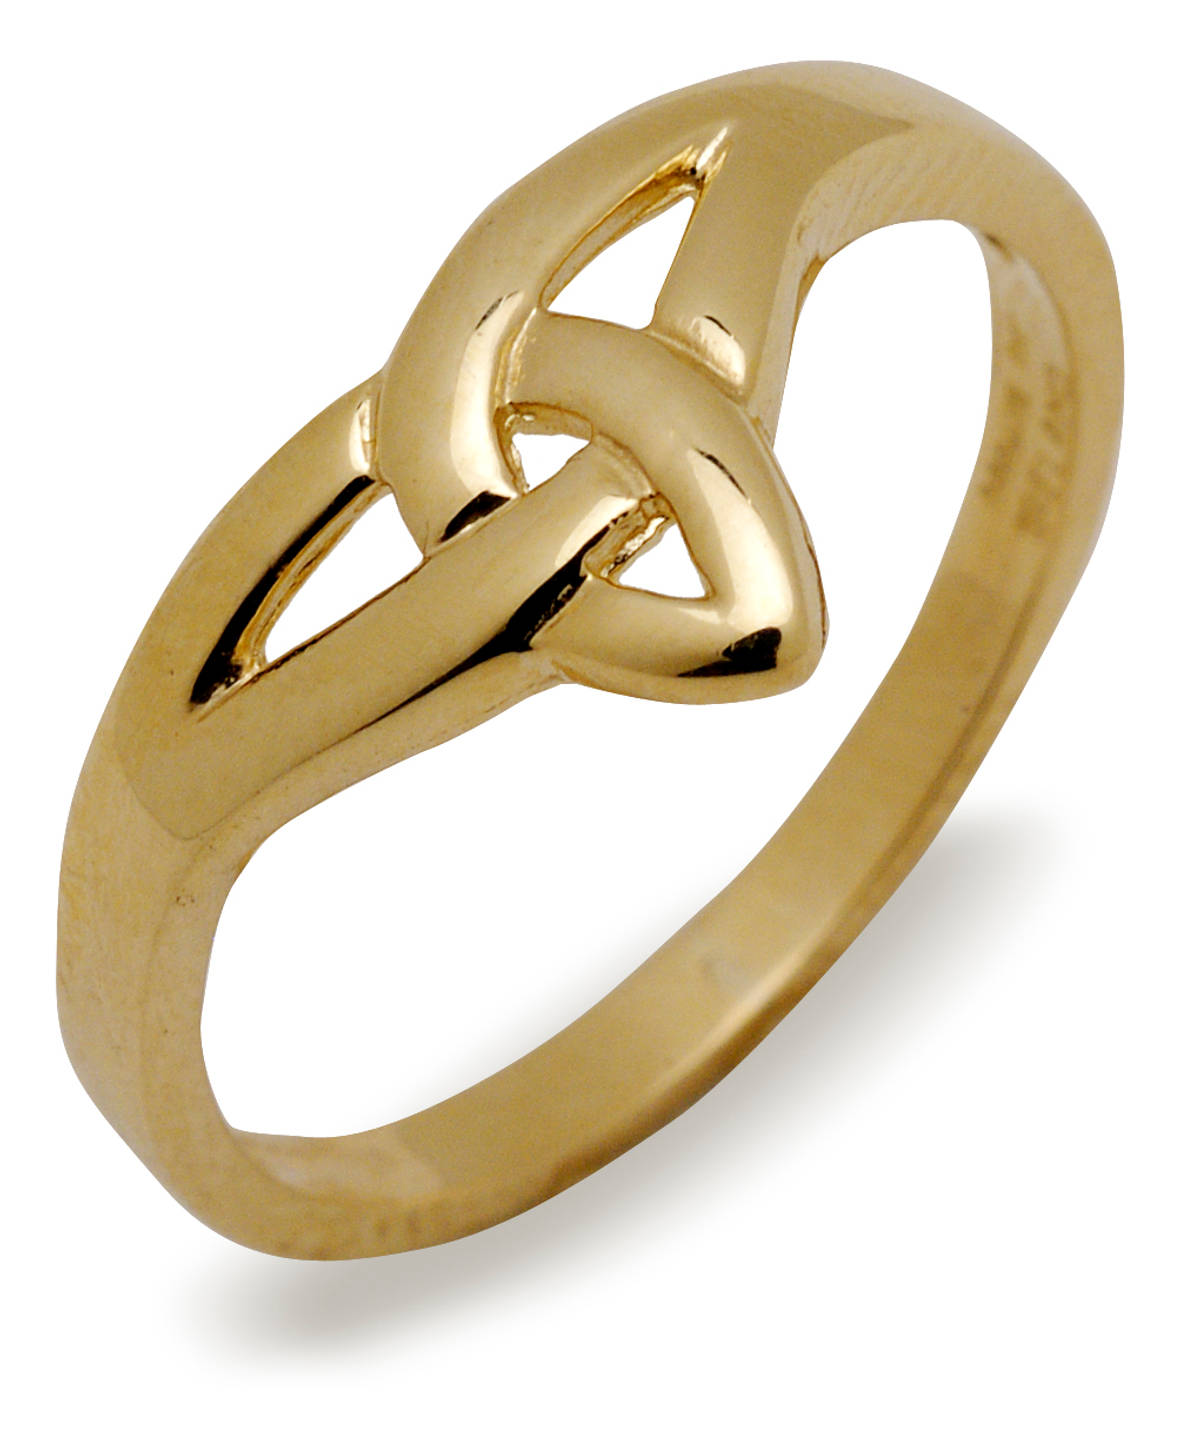 10 carat yellow gold trinity knot ring